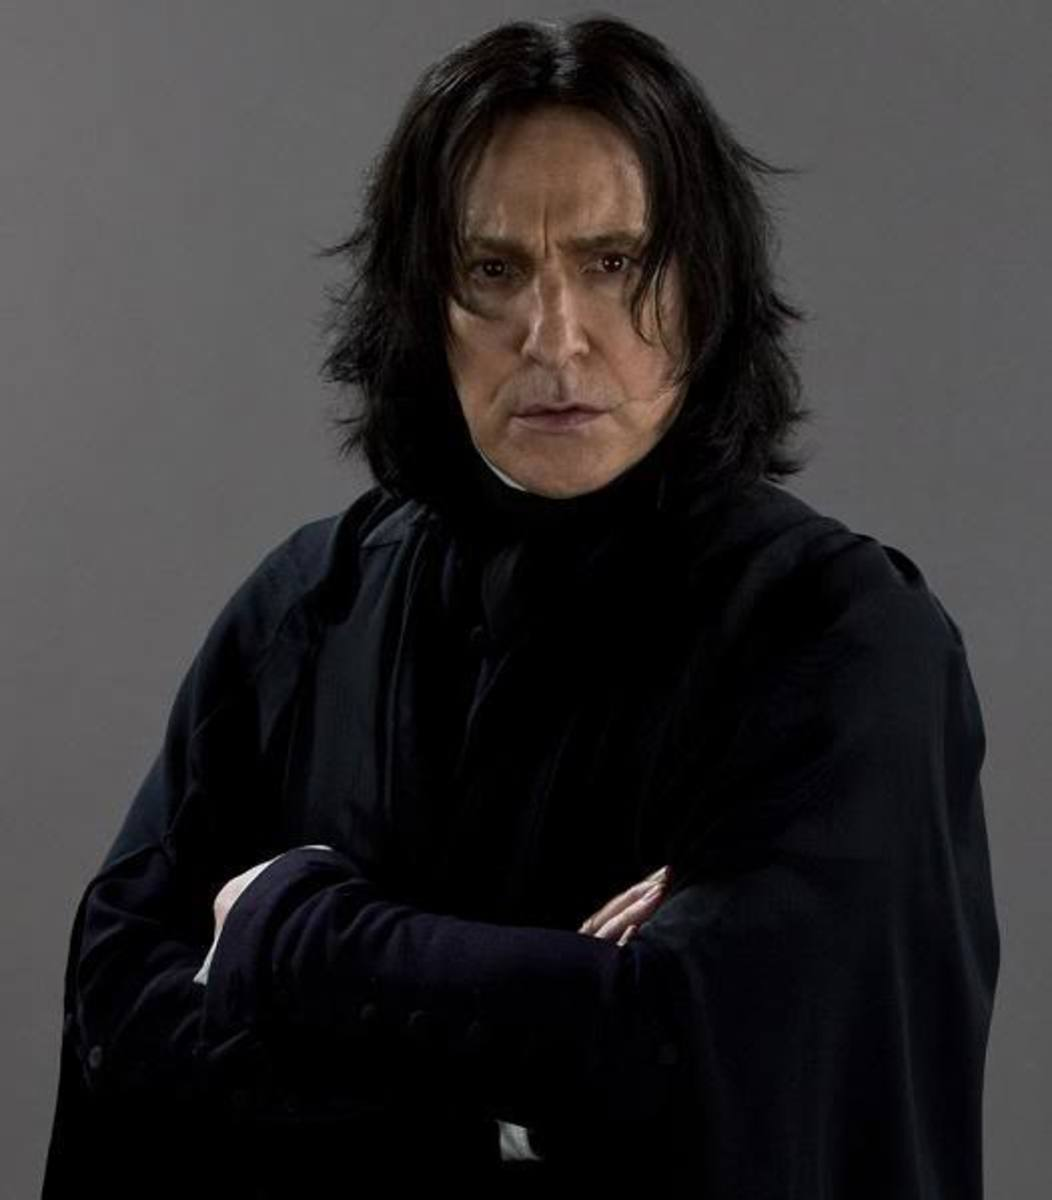 Though Alan Rickman had a long and wonderful career in Hollywood, we'll always remember and love him as Severus Snape.